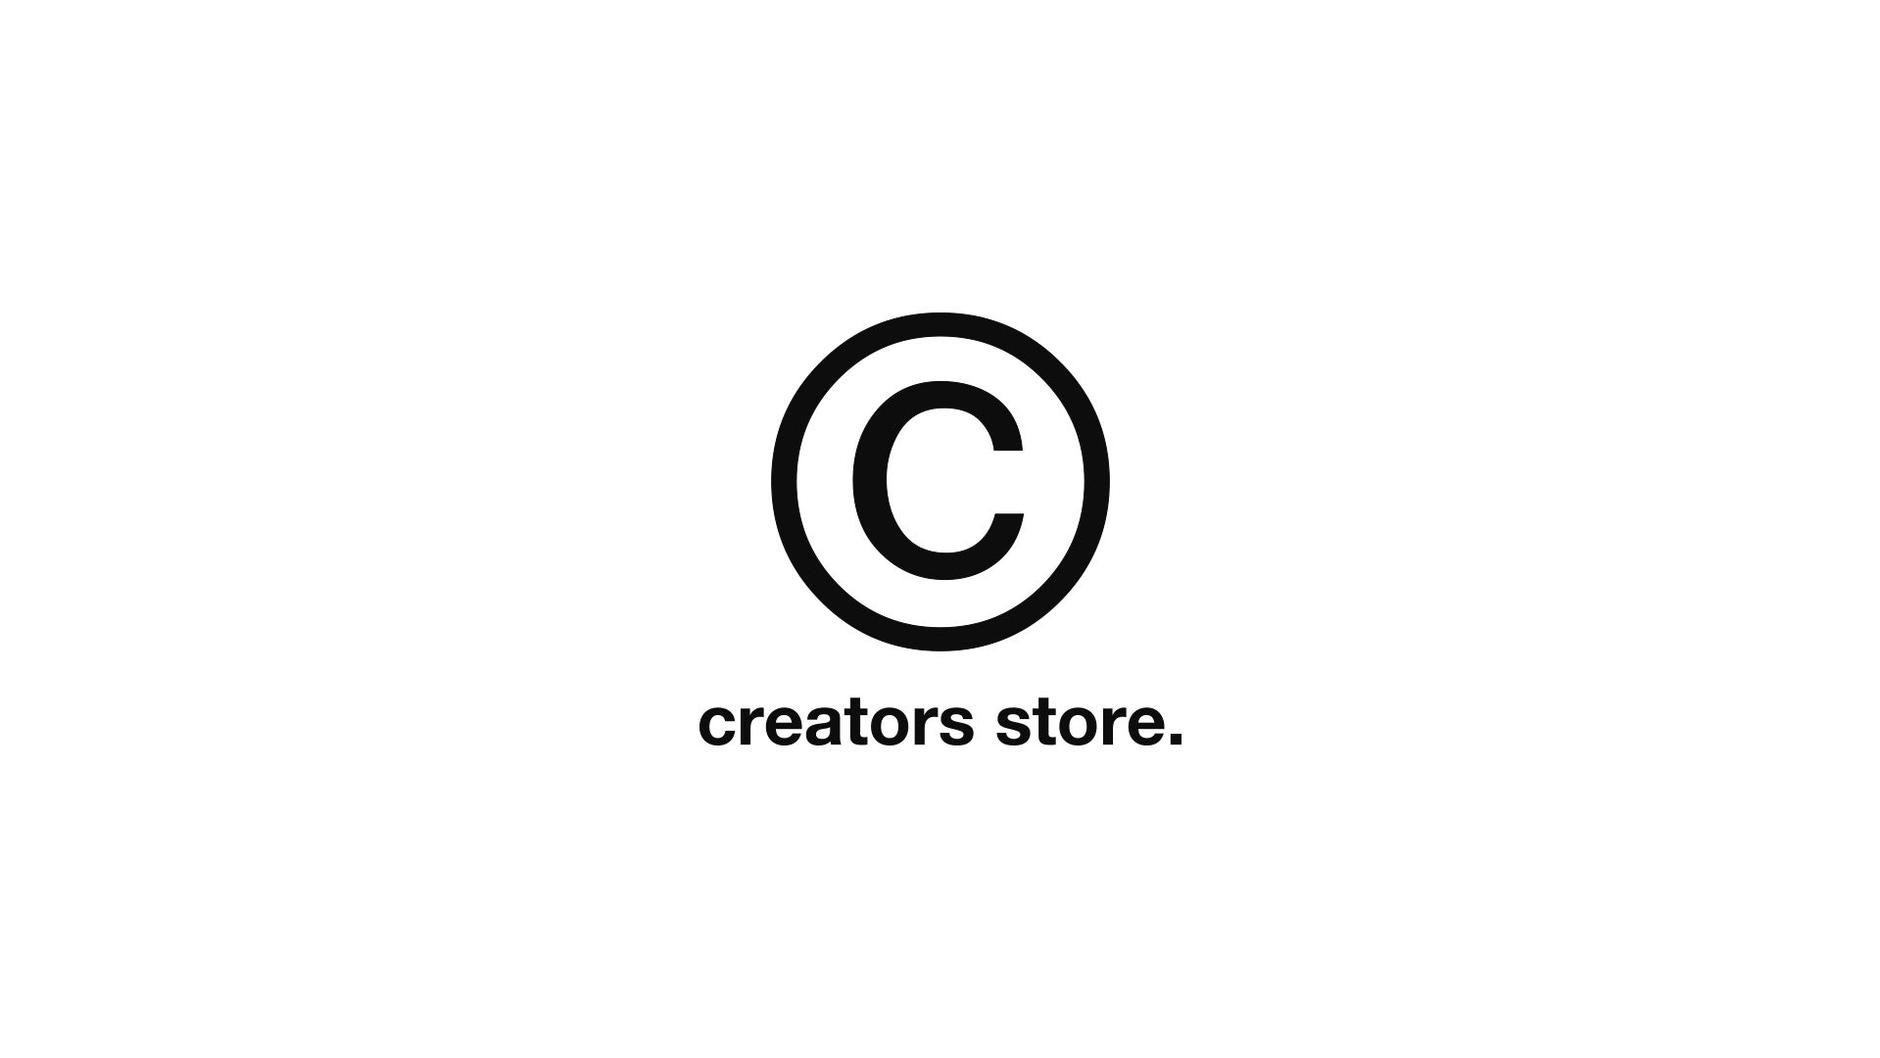 DRAWING AND MANUAL creators store.